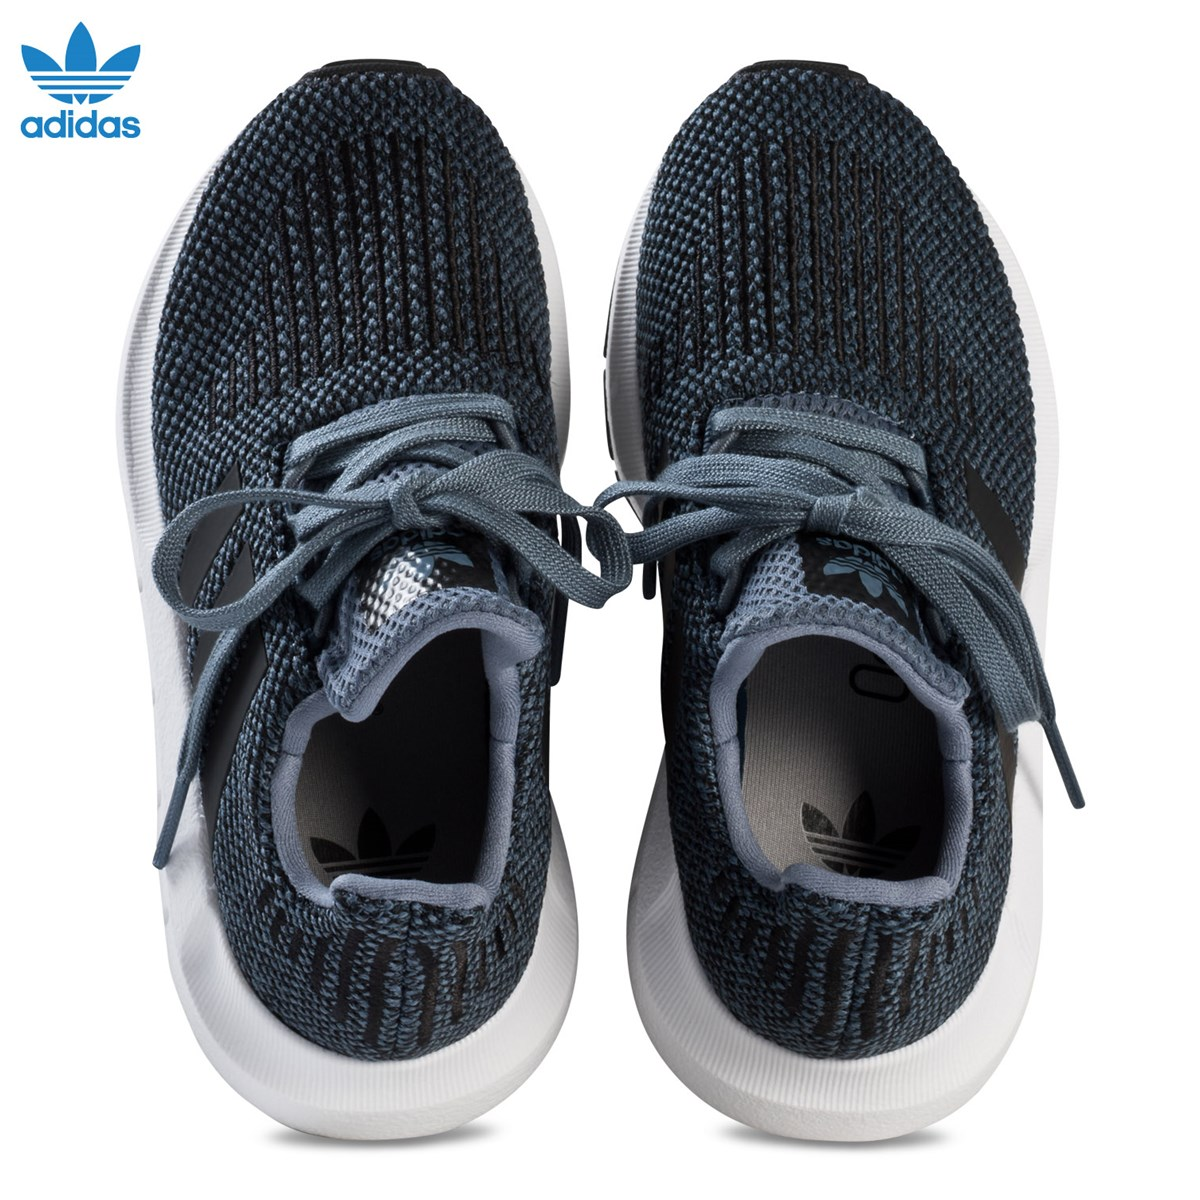 Adidas Boys' Sneak Run C Swift Originals CxdBero